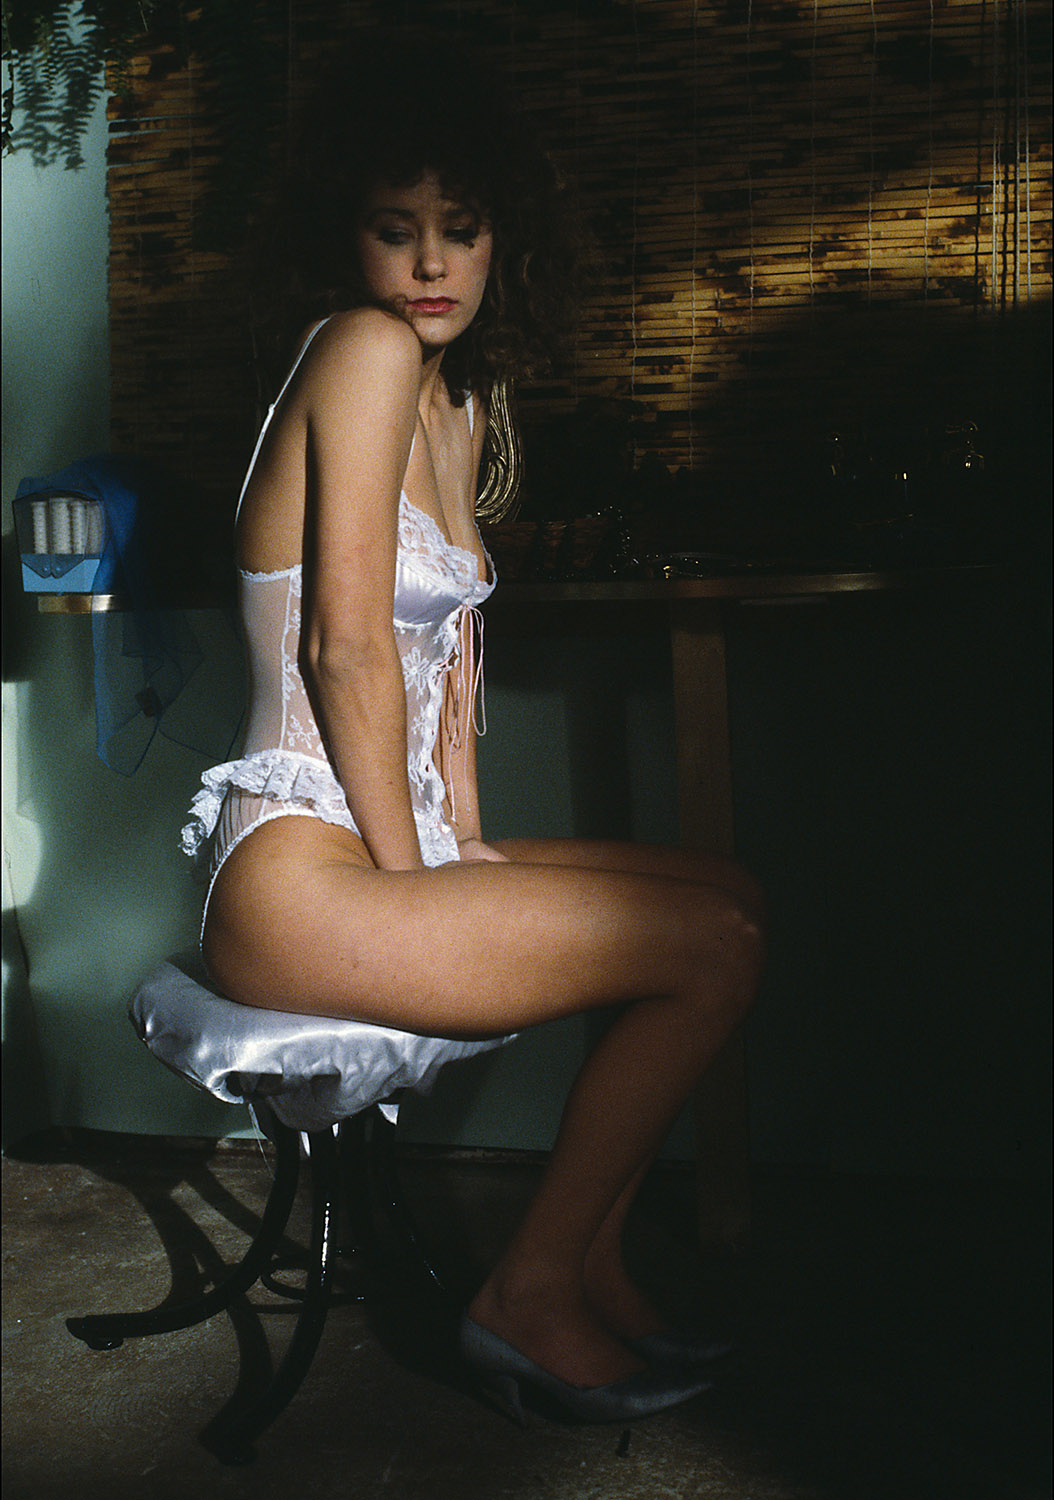 Brooke in Pussycat Galore, 1984